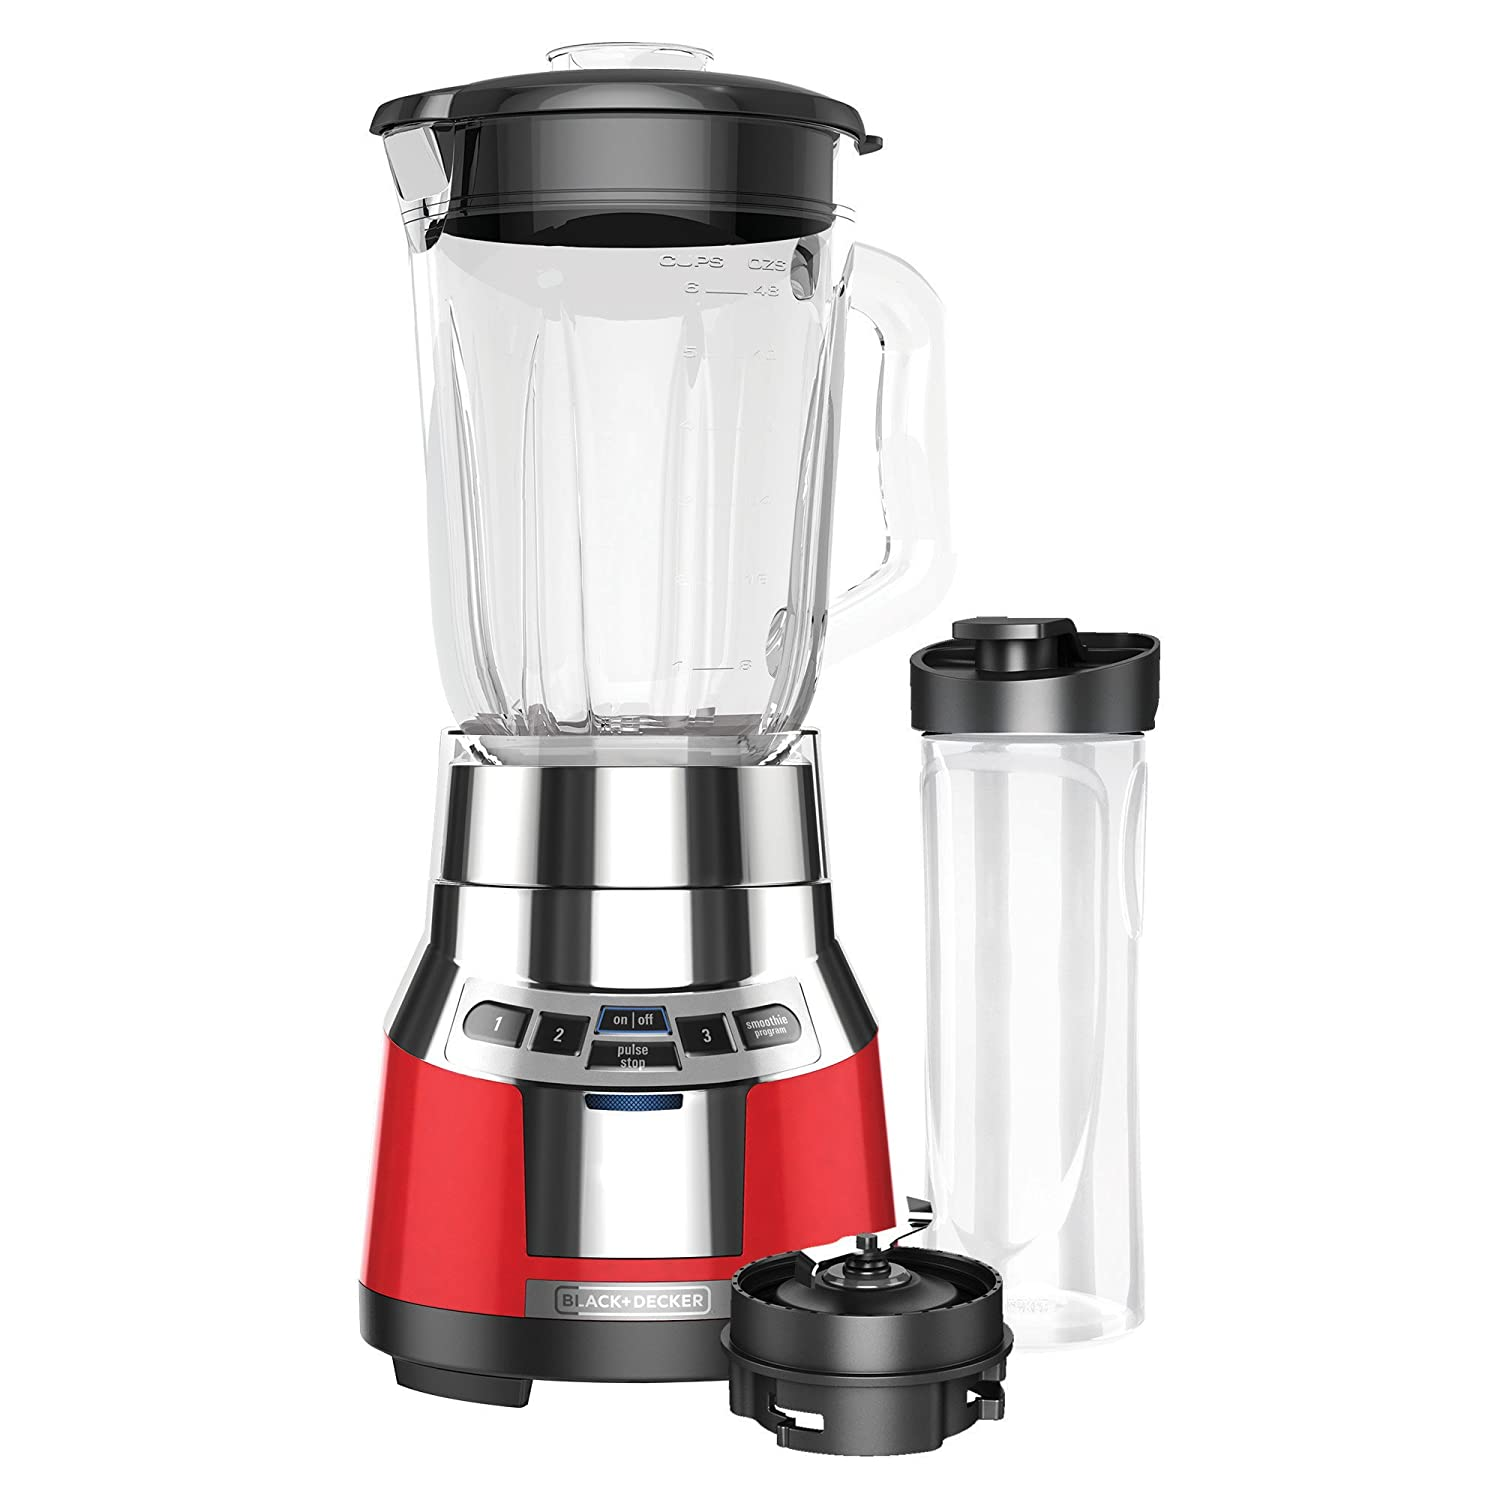 Black & Decker BL1821RG-P FusionBlade Digital Blender with ...